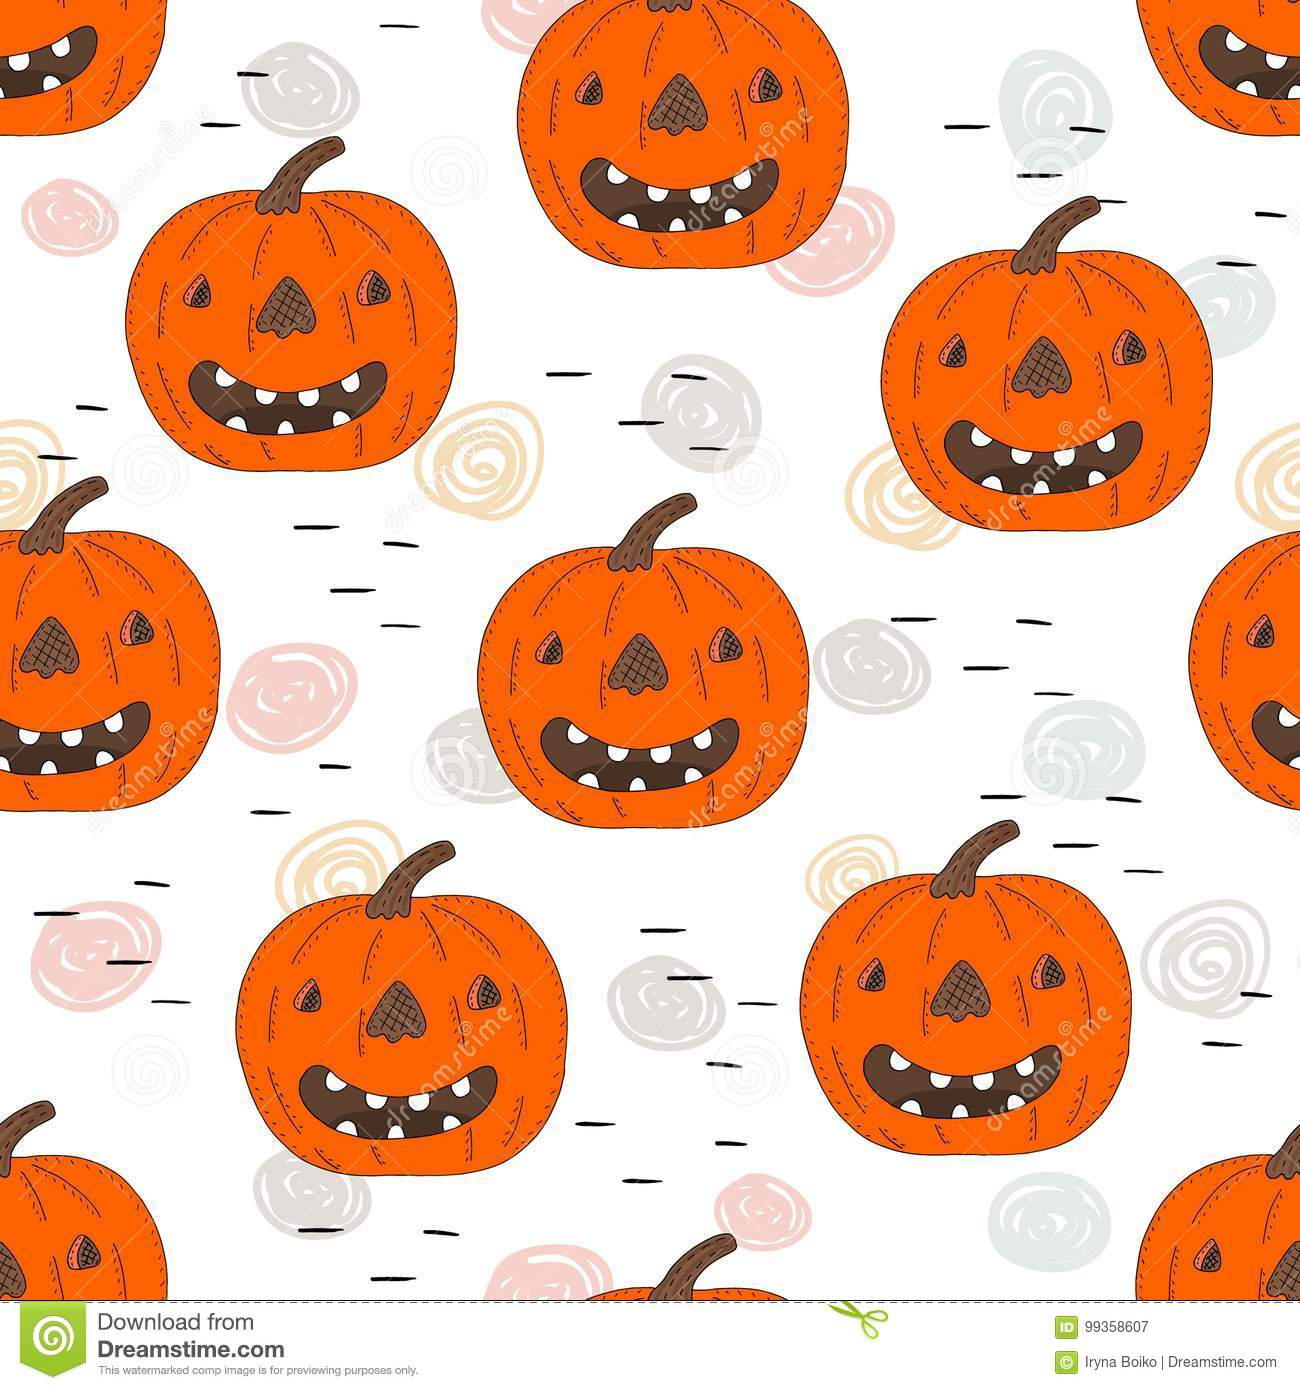 photo regarding Printable Pumpkin Pictures known as Satisfied Halloween Print With Pumpkin. Printable Templates